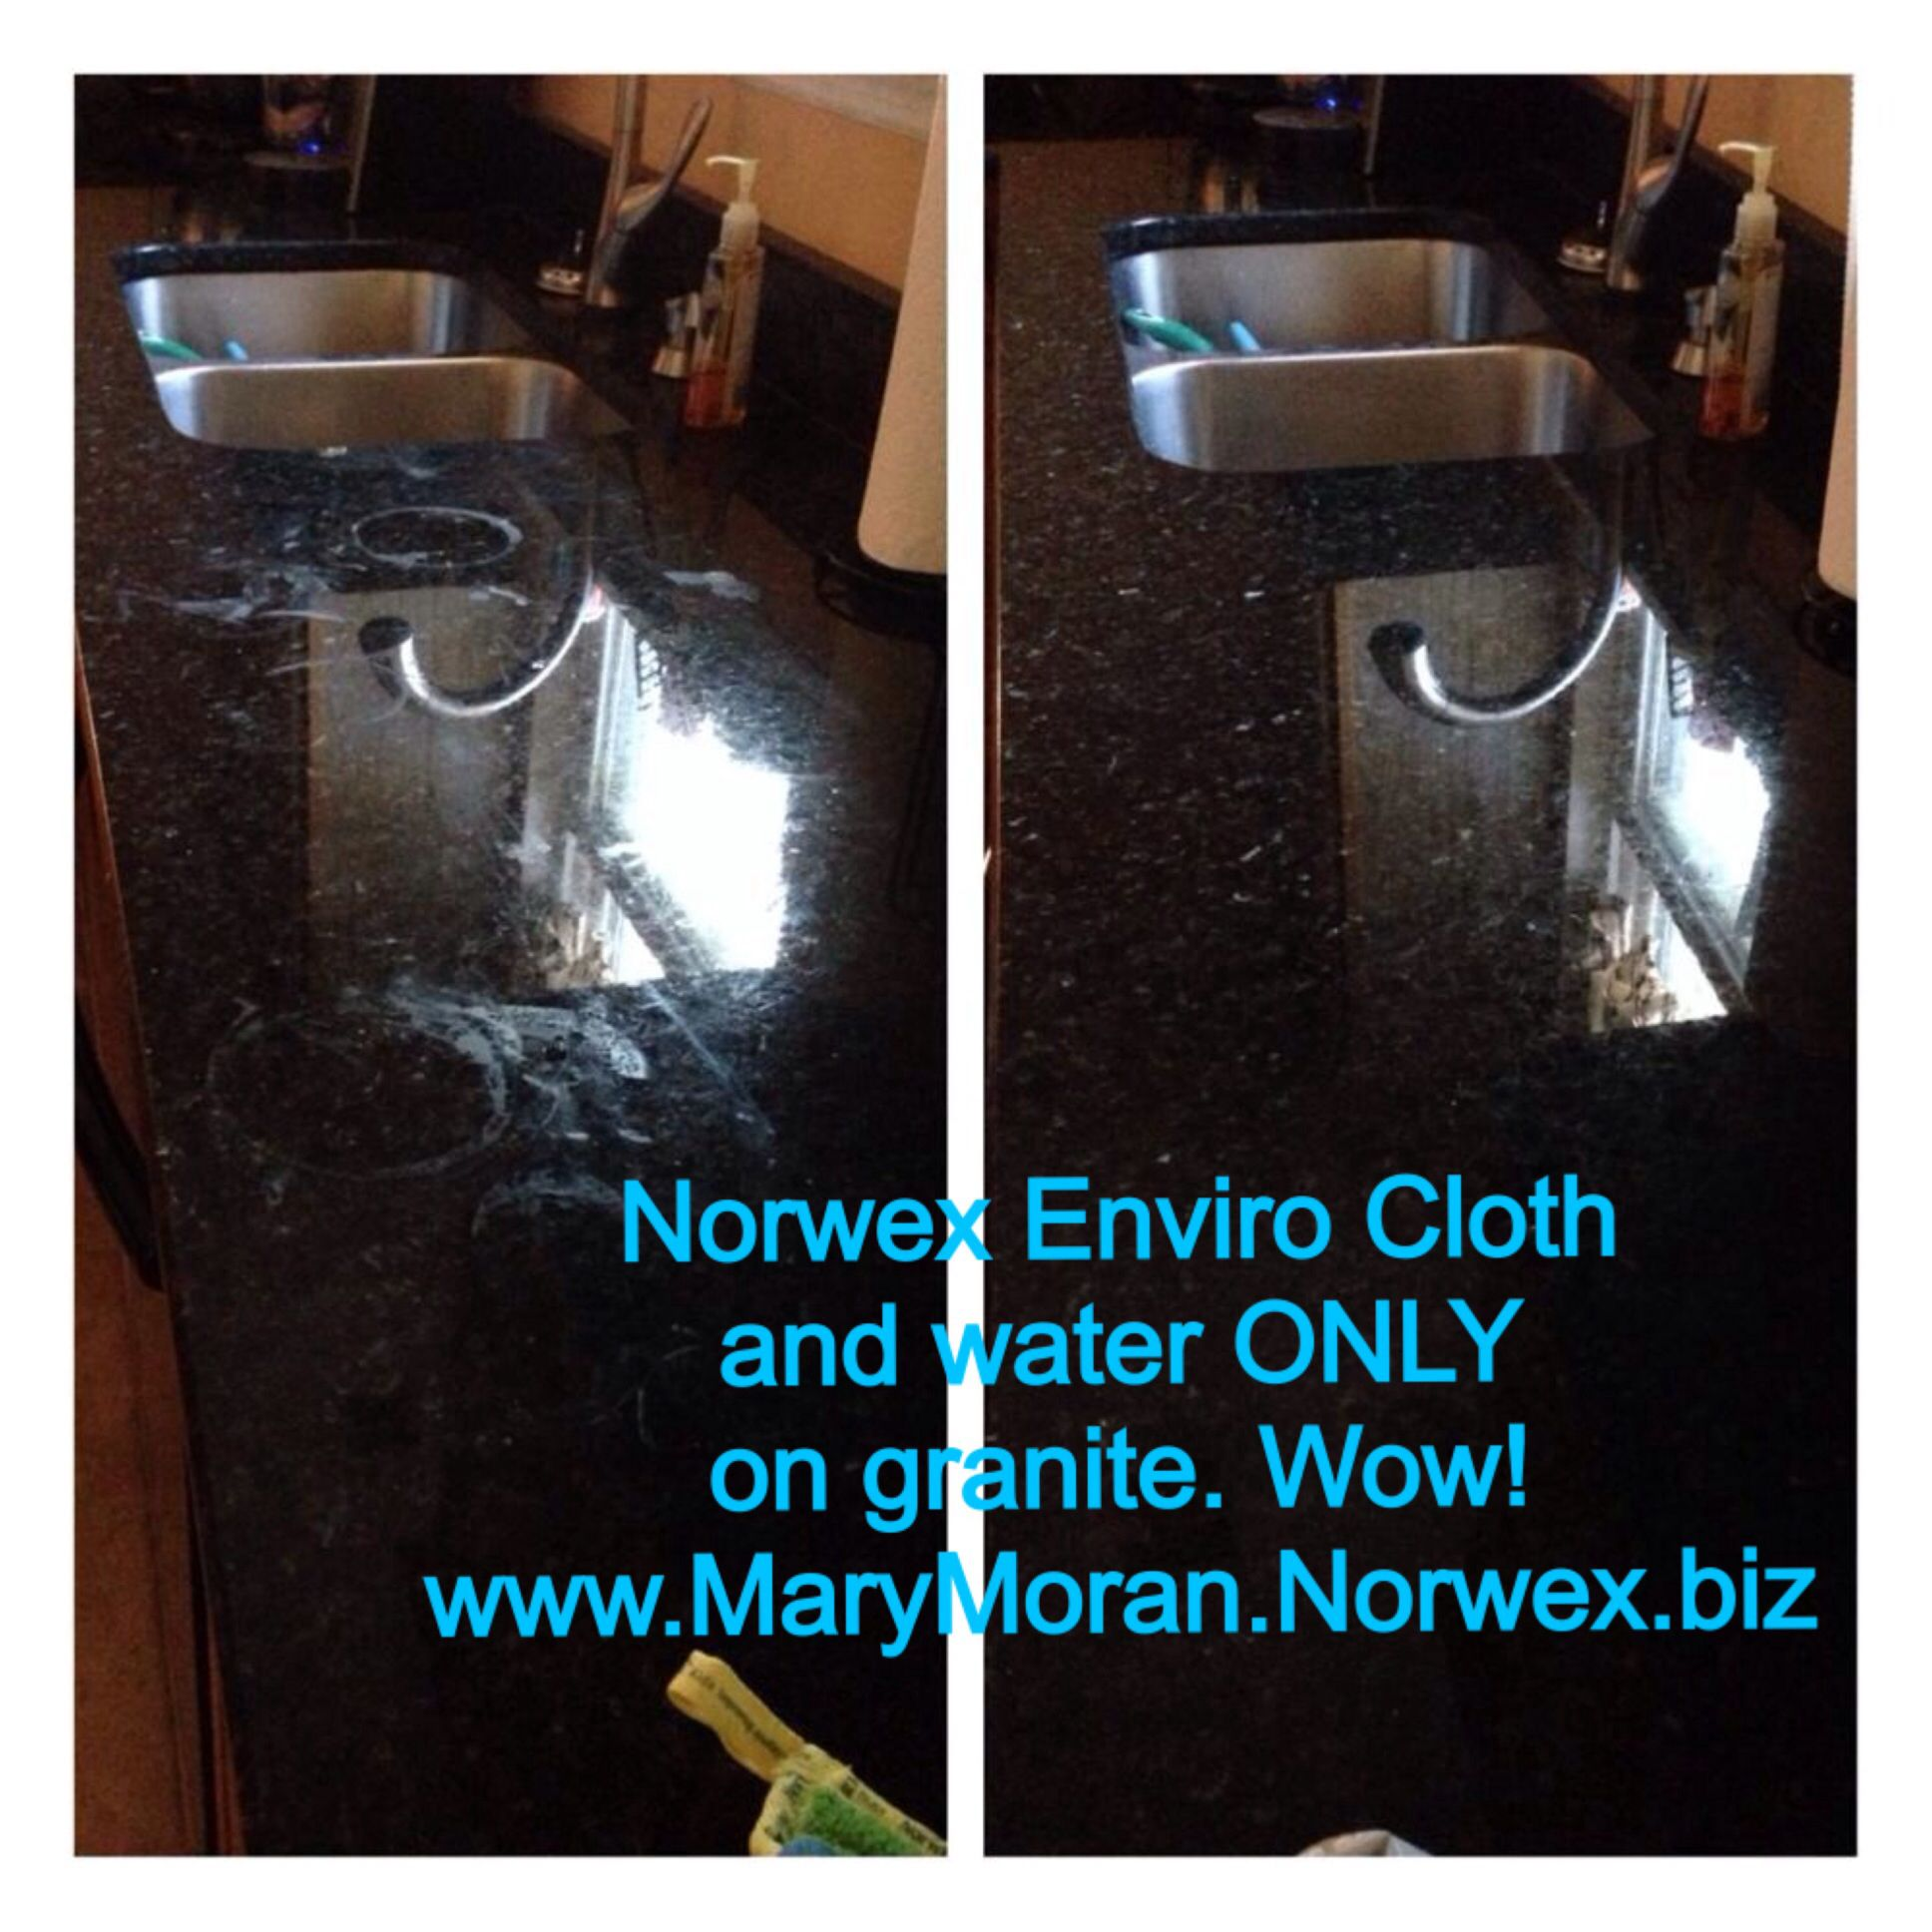 The Enviro Cloth On Granitewow Wwwmarymorannorwexbiz